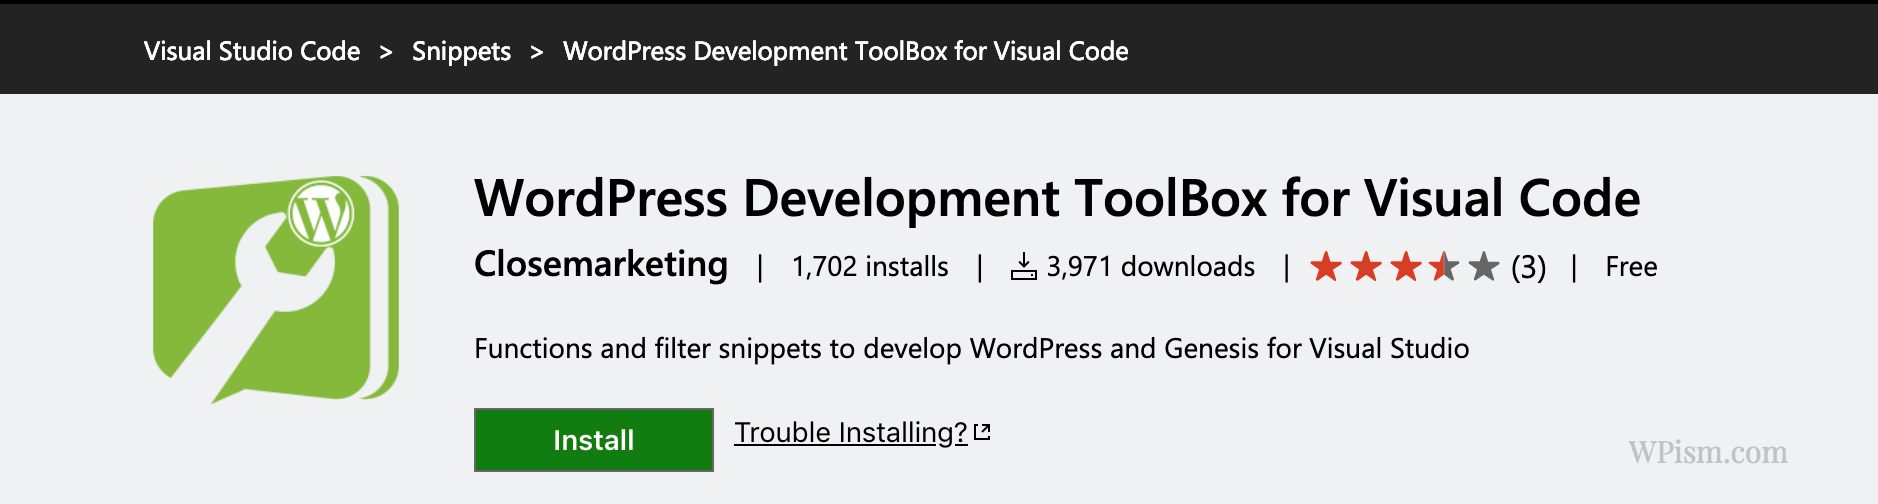 WordPress Development ToolBox for Visual Code